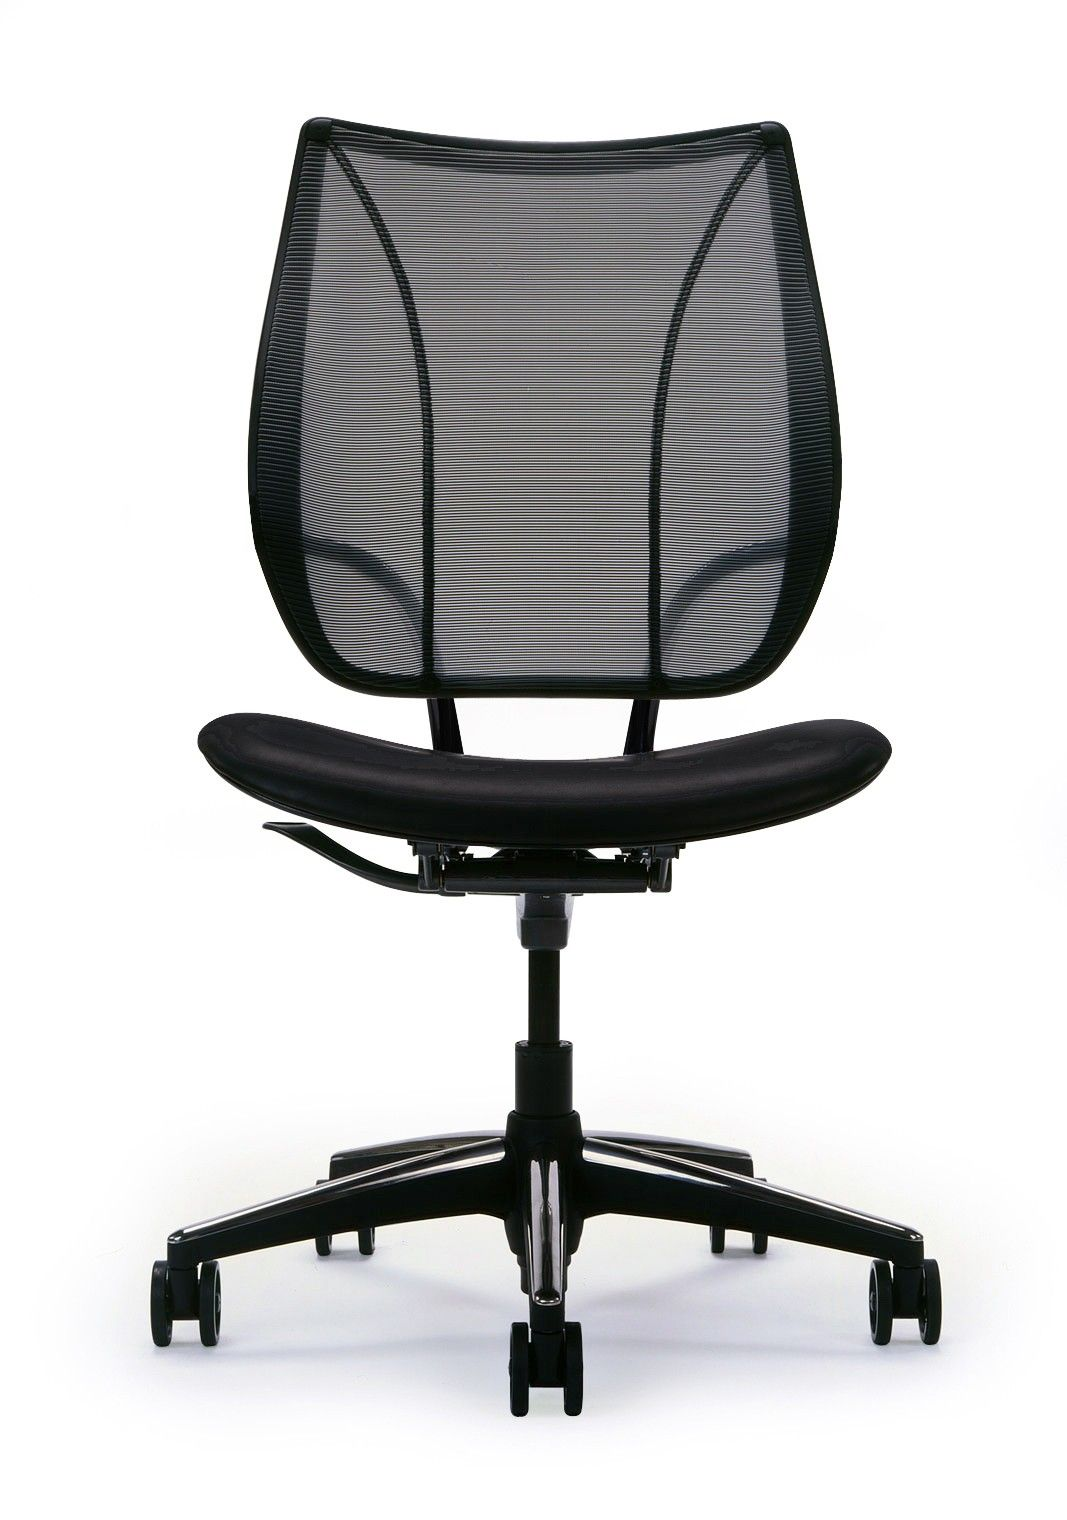 Ergonomic Office Chairs Ergonomic Office Chair To Prevent From Backache Office Architect Office Chair Counter Height Office Chair Ergonomic Office Chair